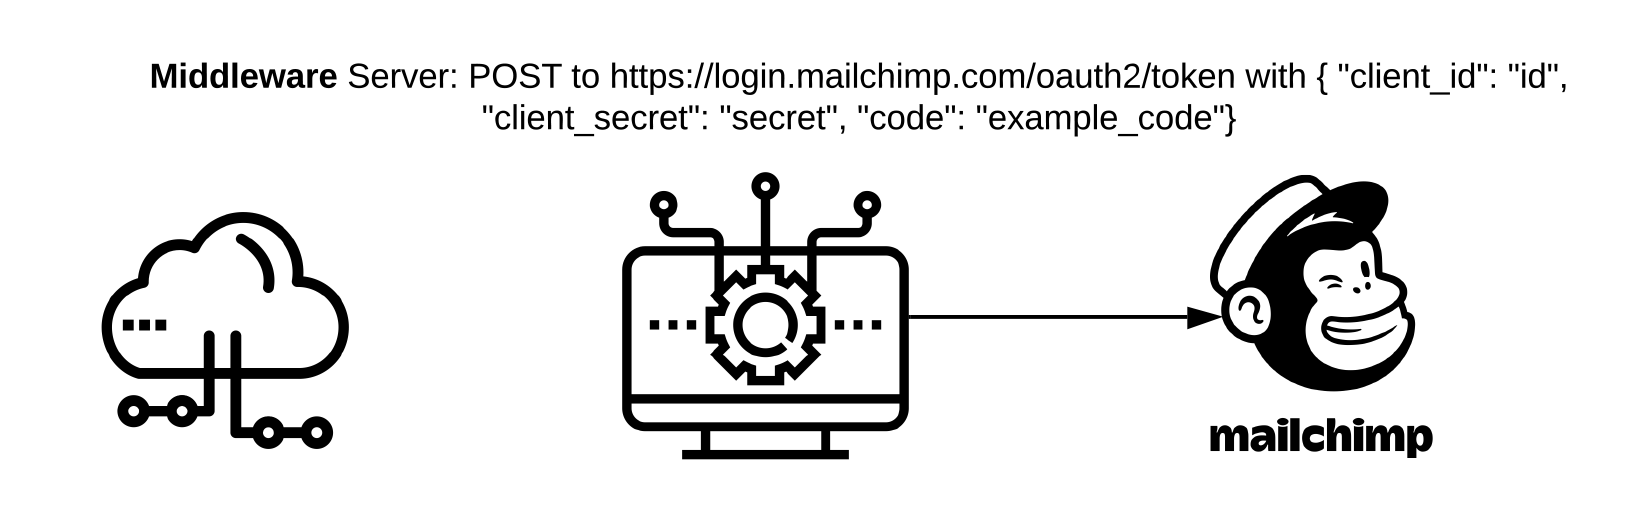 "Middleware Server: POSTS to https://login.mailchimp.com/oauth2/token with { ""client_id"": ""id"", ""client_secret"": ""secret"", ""code"": ""example_code"" }"